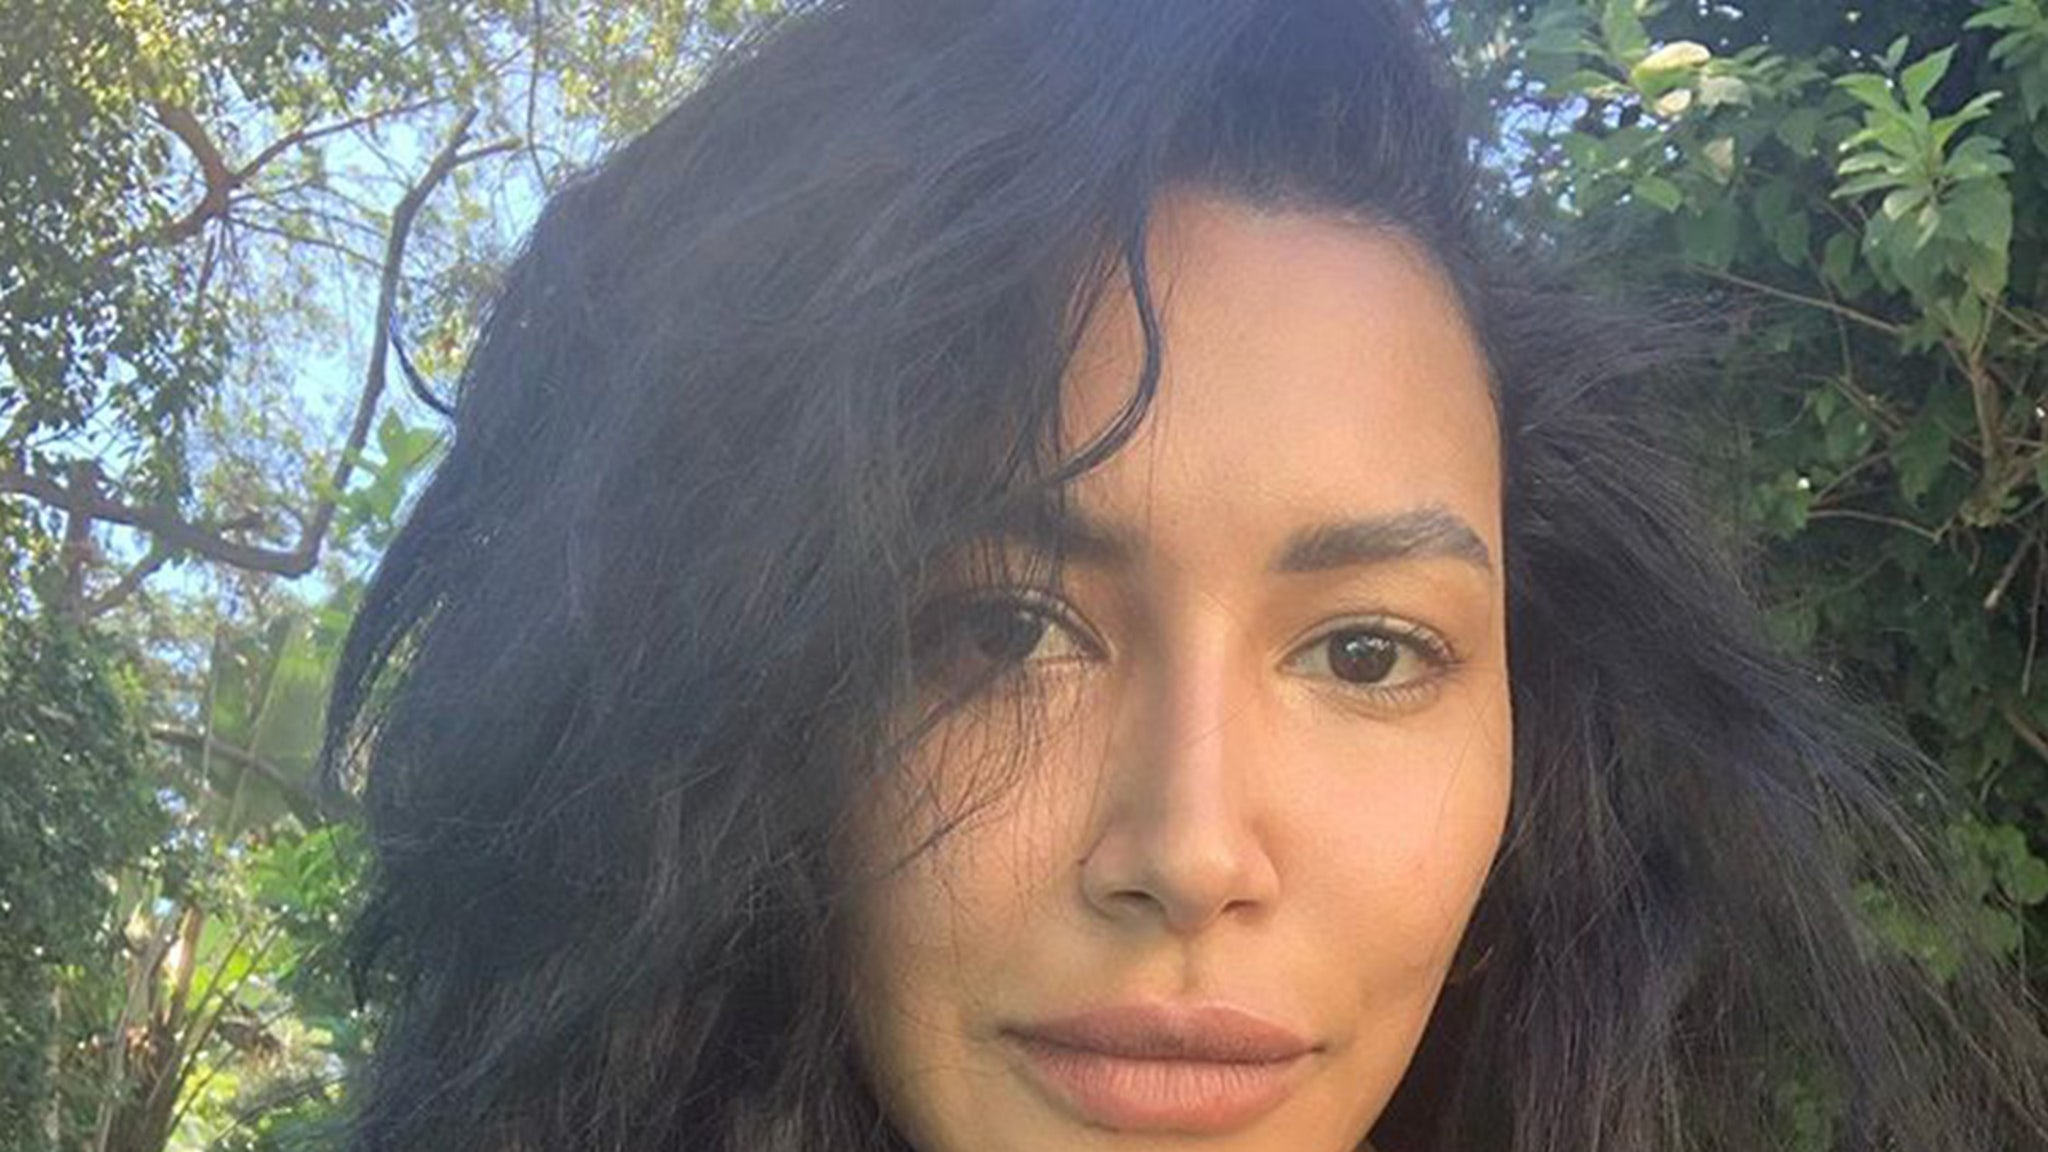 Naya Rivera Search Now Recovery Mission, Presumed Dead in ...